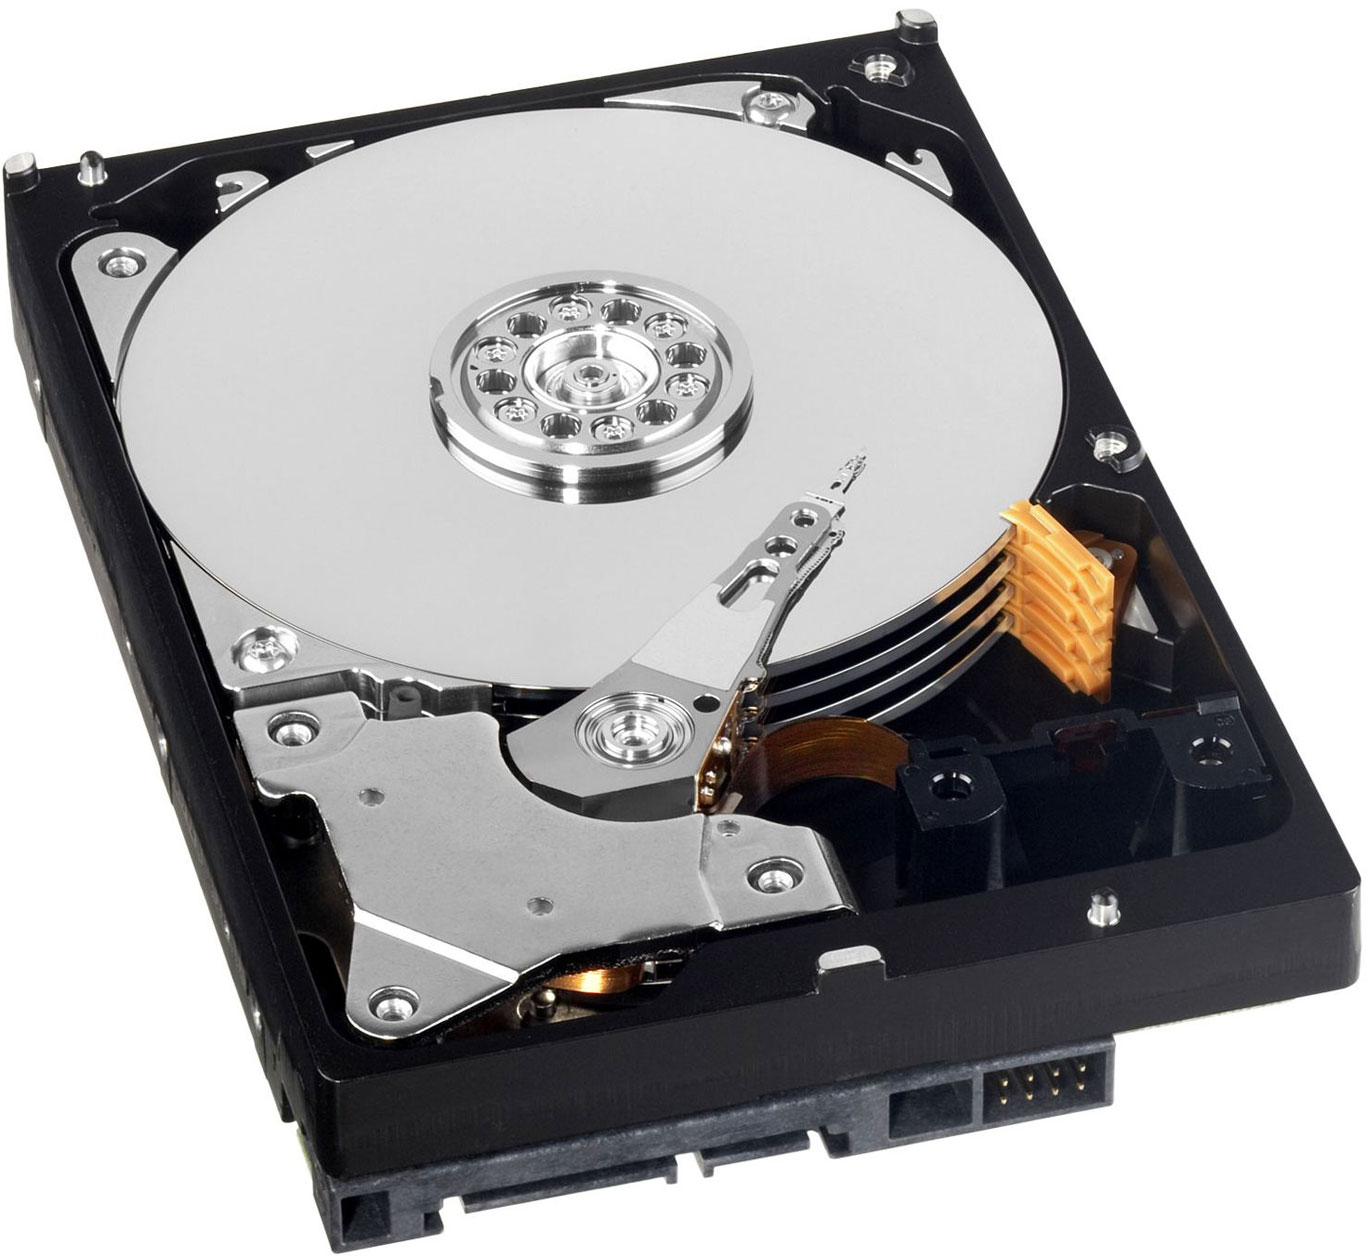 PC Sata 360GB HDD